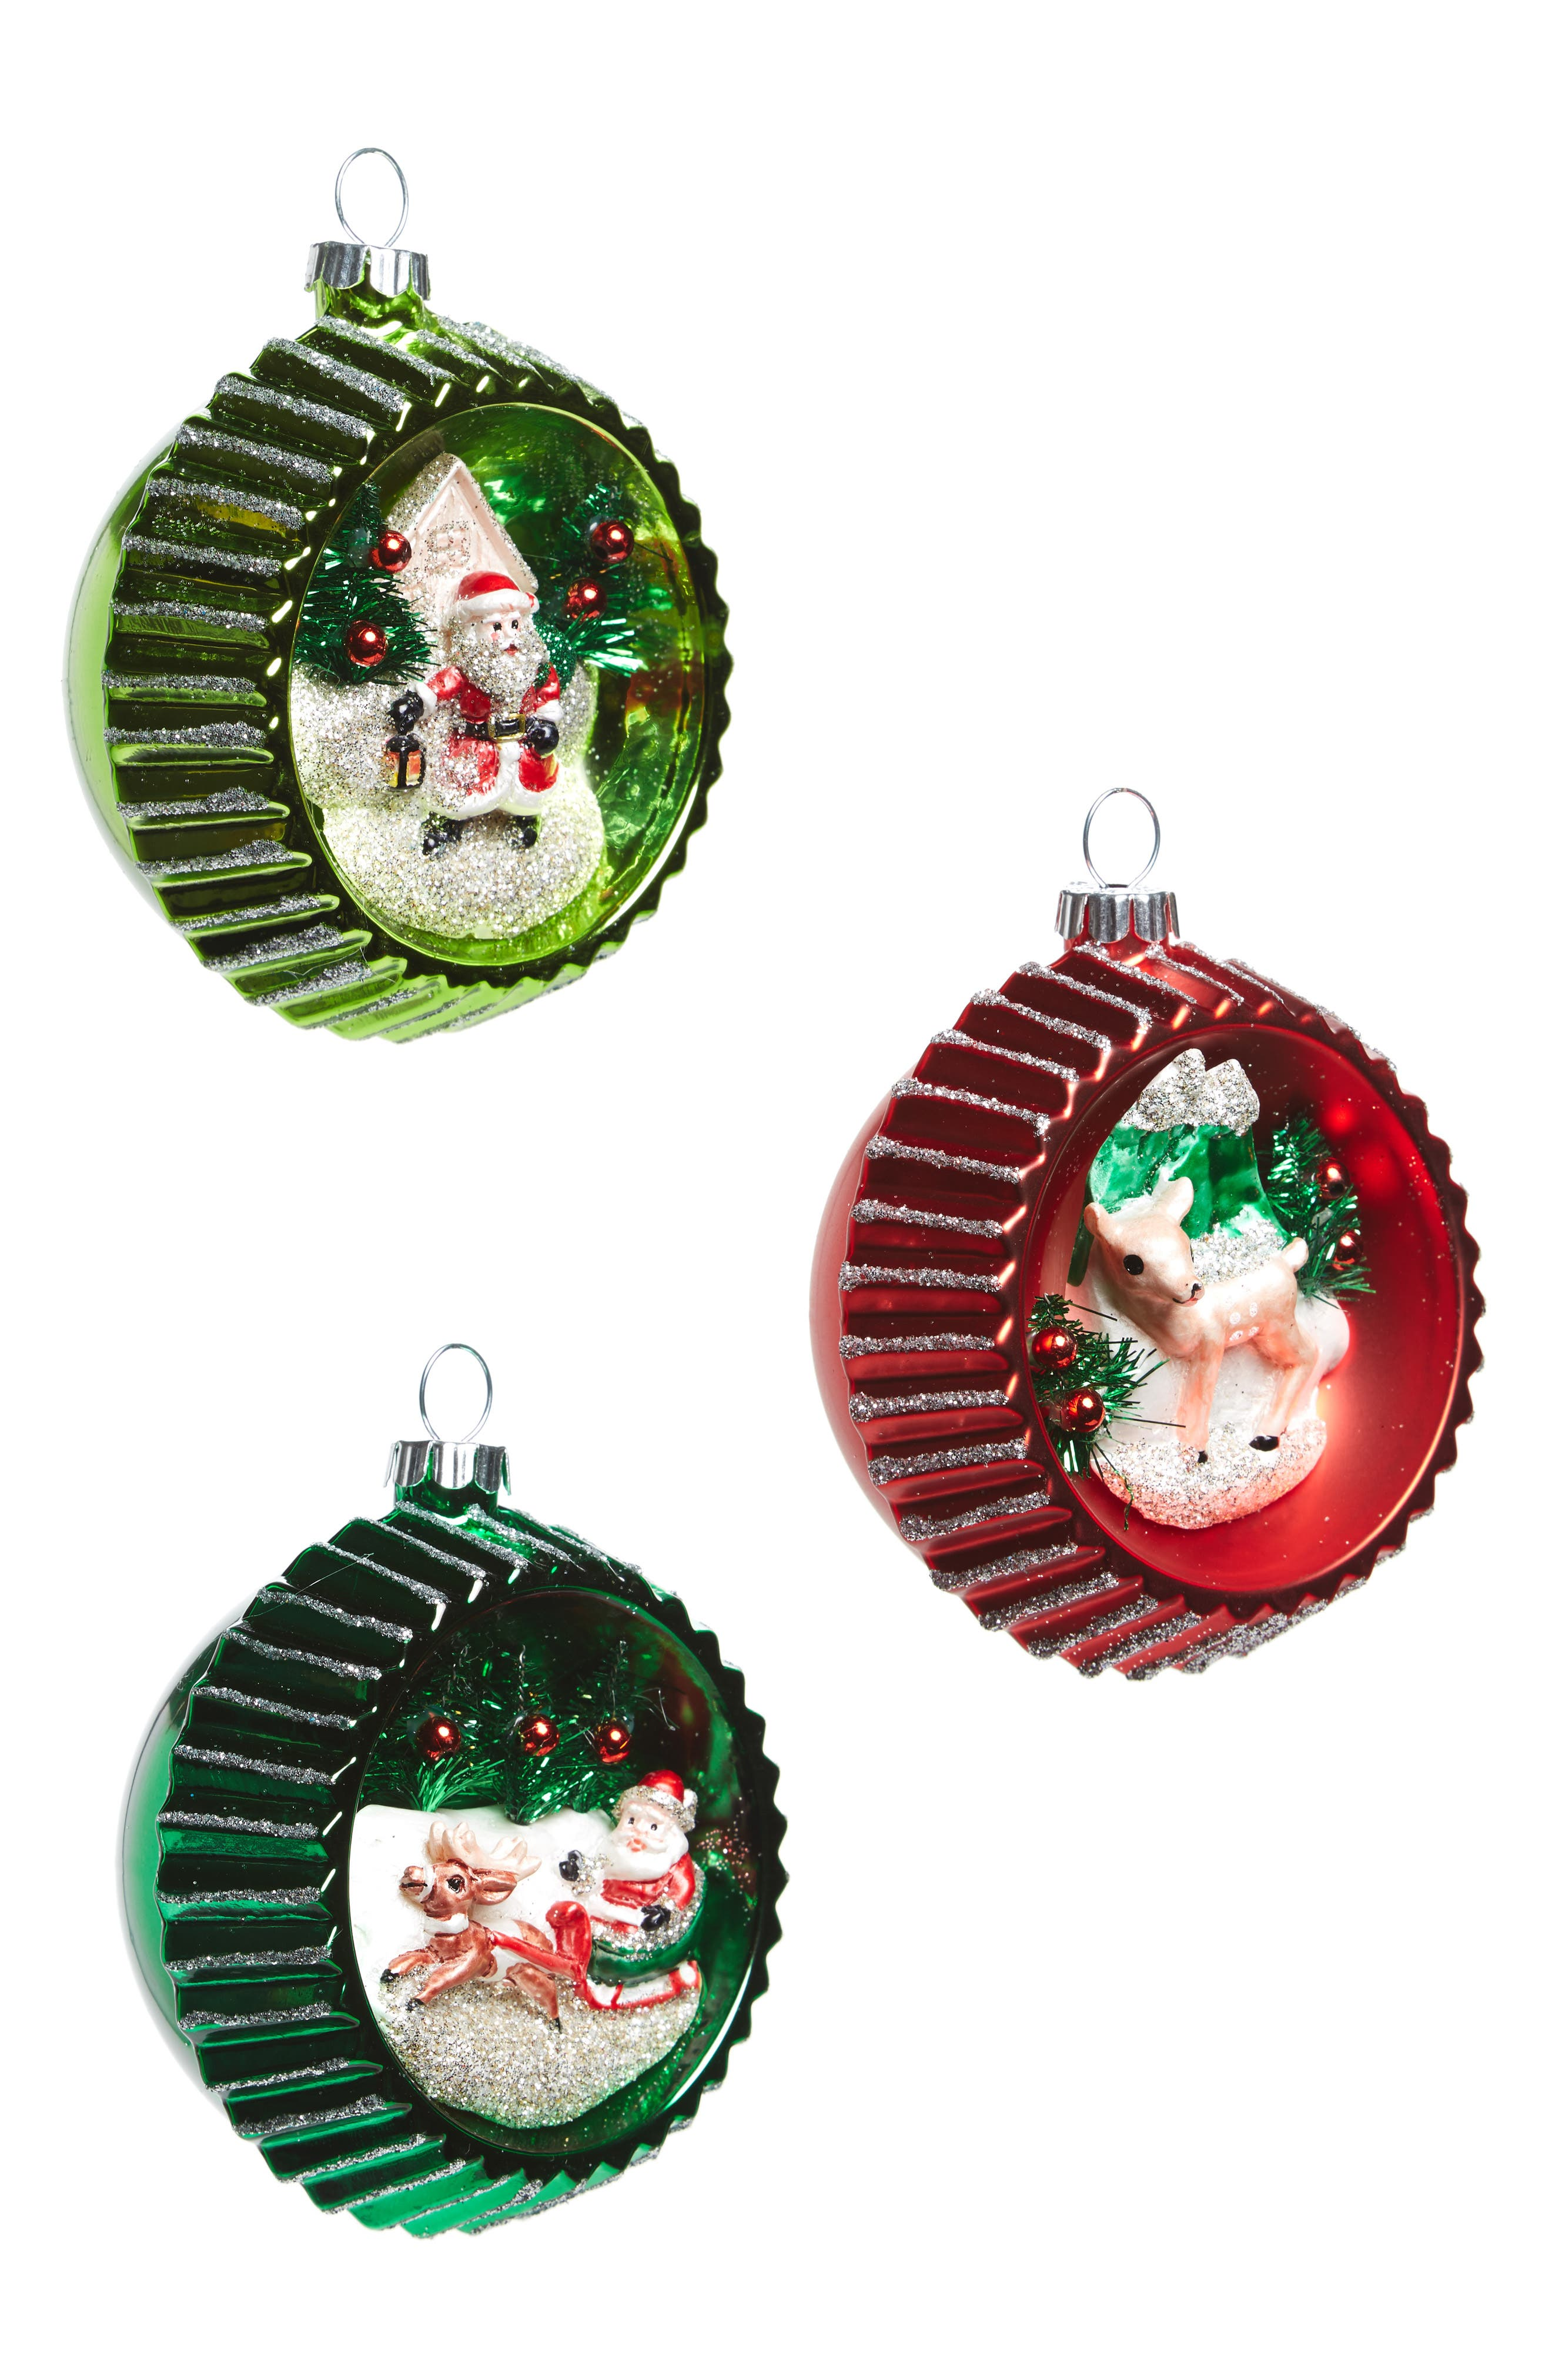 Alternate Image 1 Selected - Christopher Radko Holiday Splendor Set of 3 Glass Ornaments